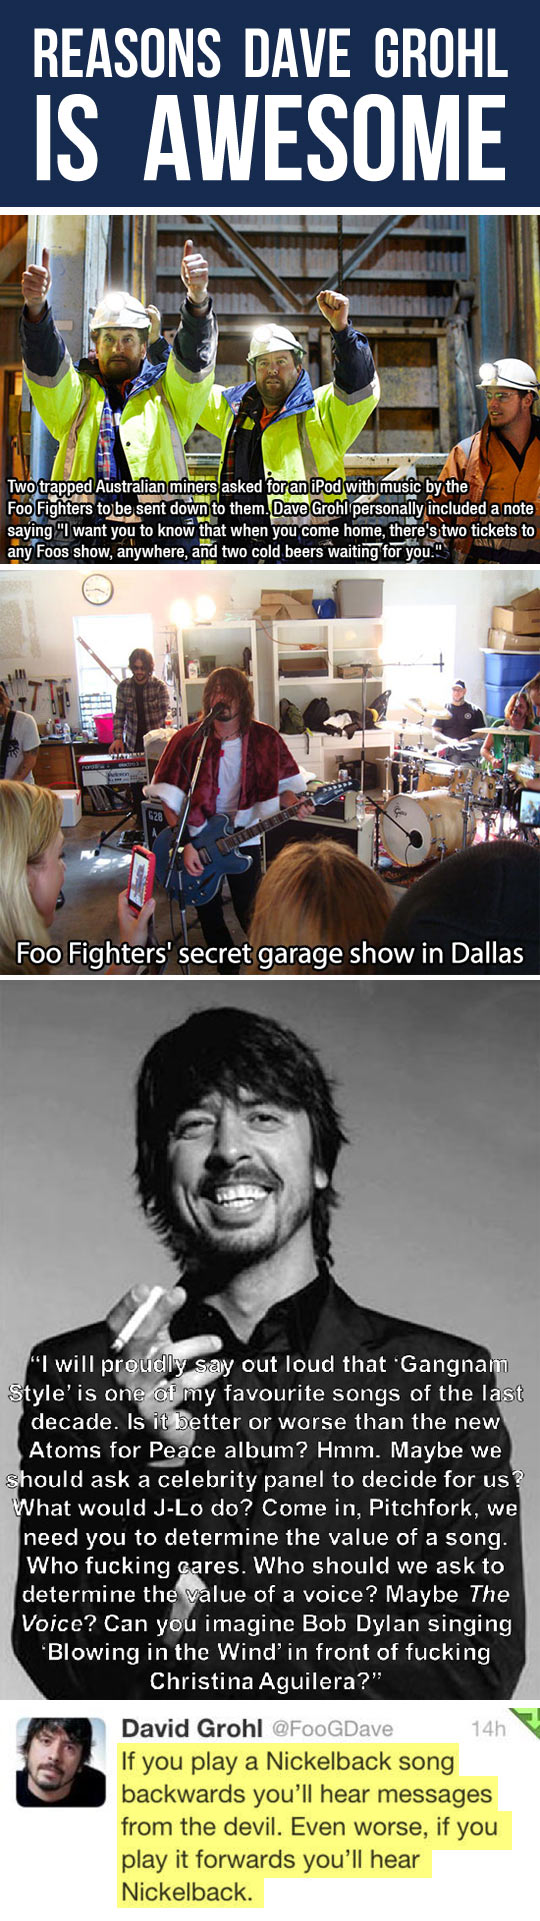 cool-Dave-Grohl-awesome-person-help